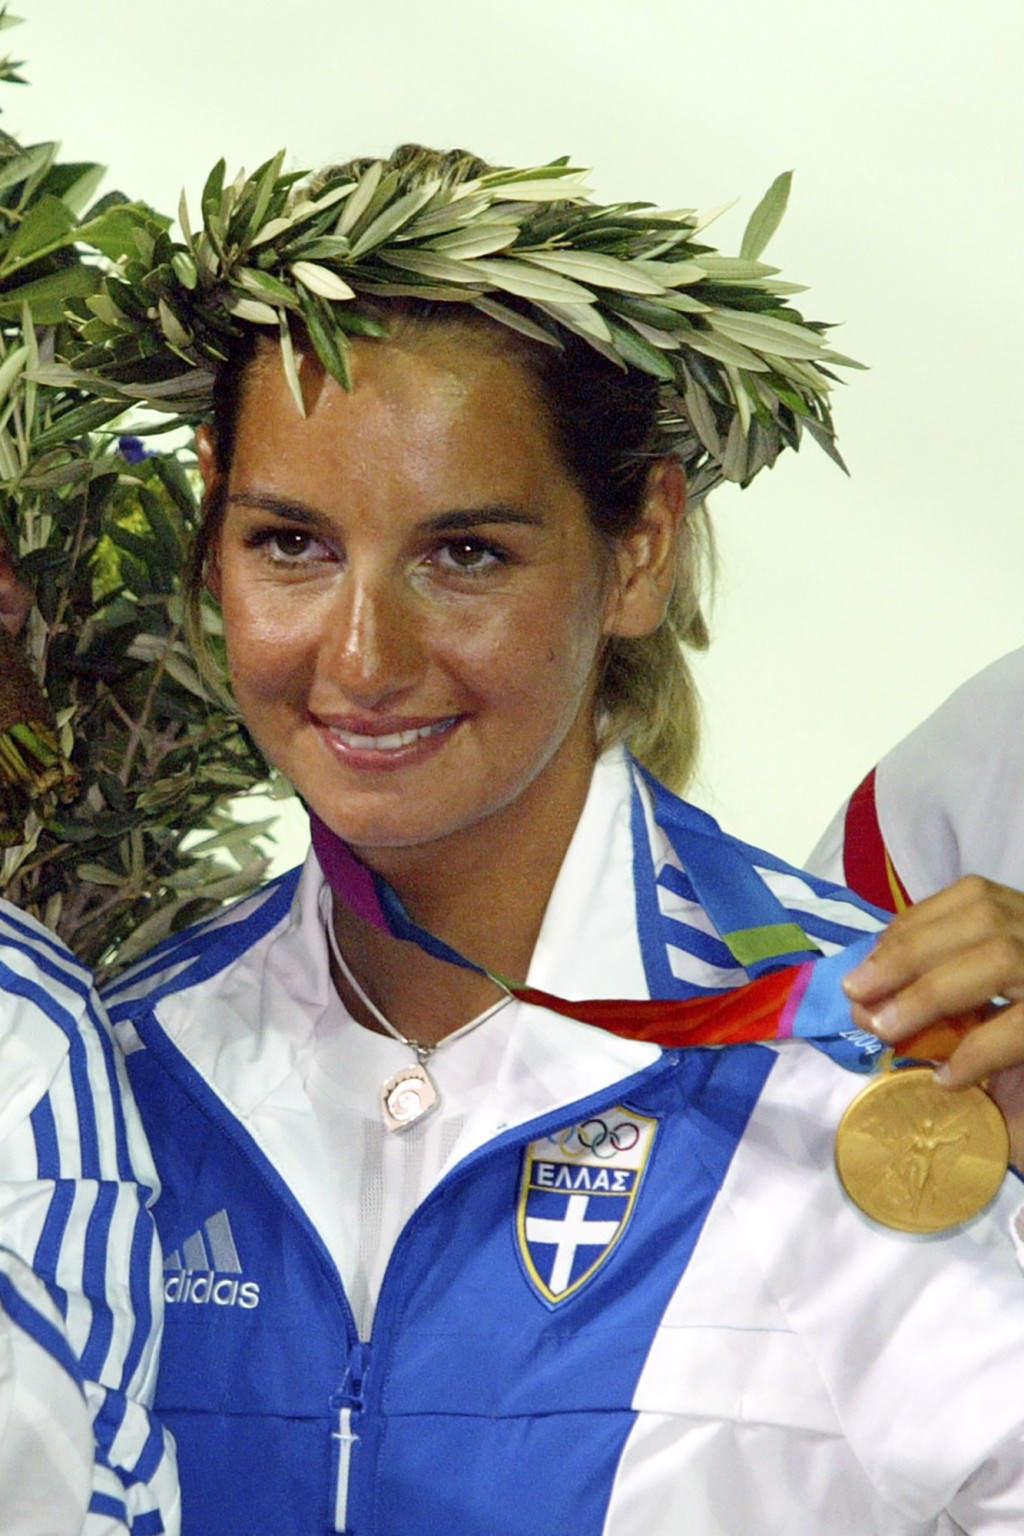 FILE - In this Saturday, Aug. 21, 2004 file photo, Greek 470 class skipper Sofia Bekatorou, displays her gold medal during the medal ceremony of the w...